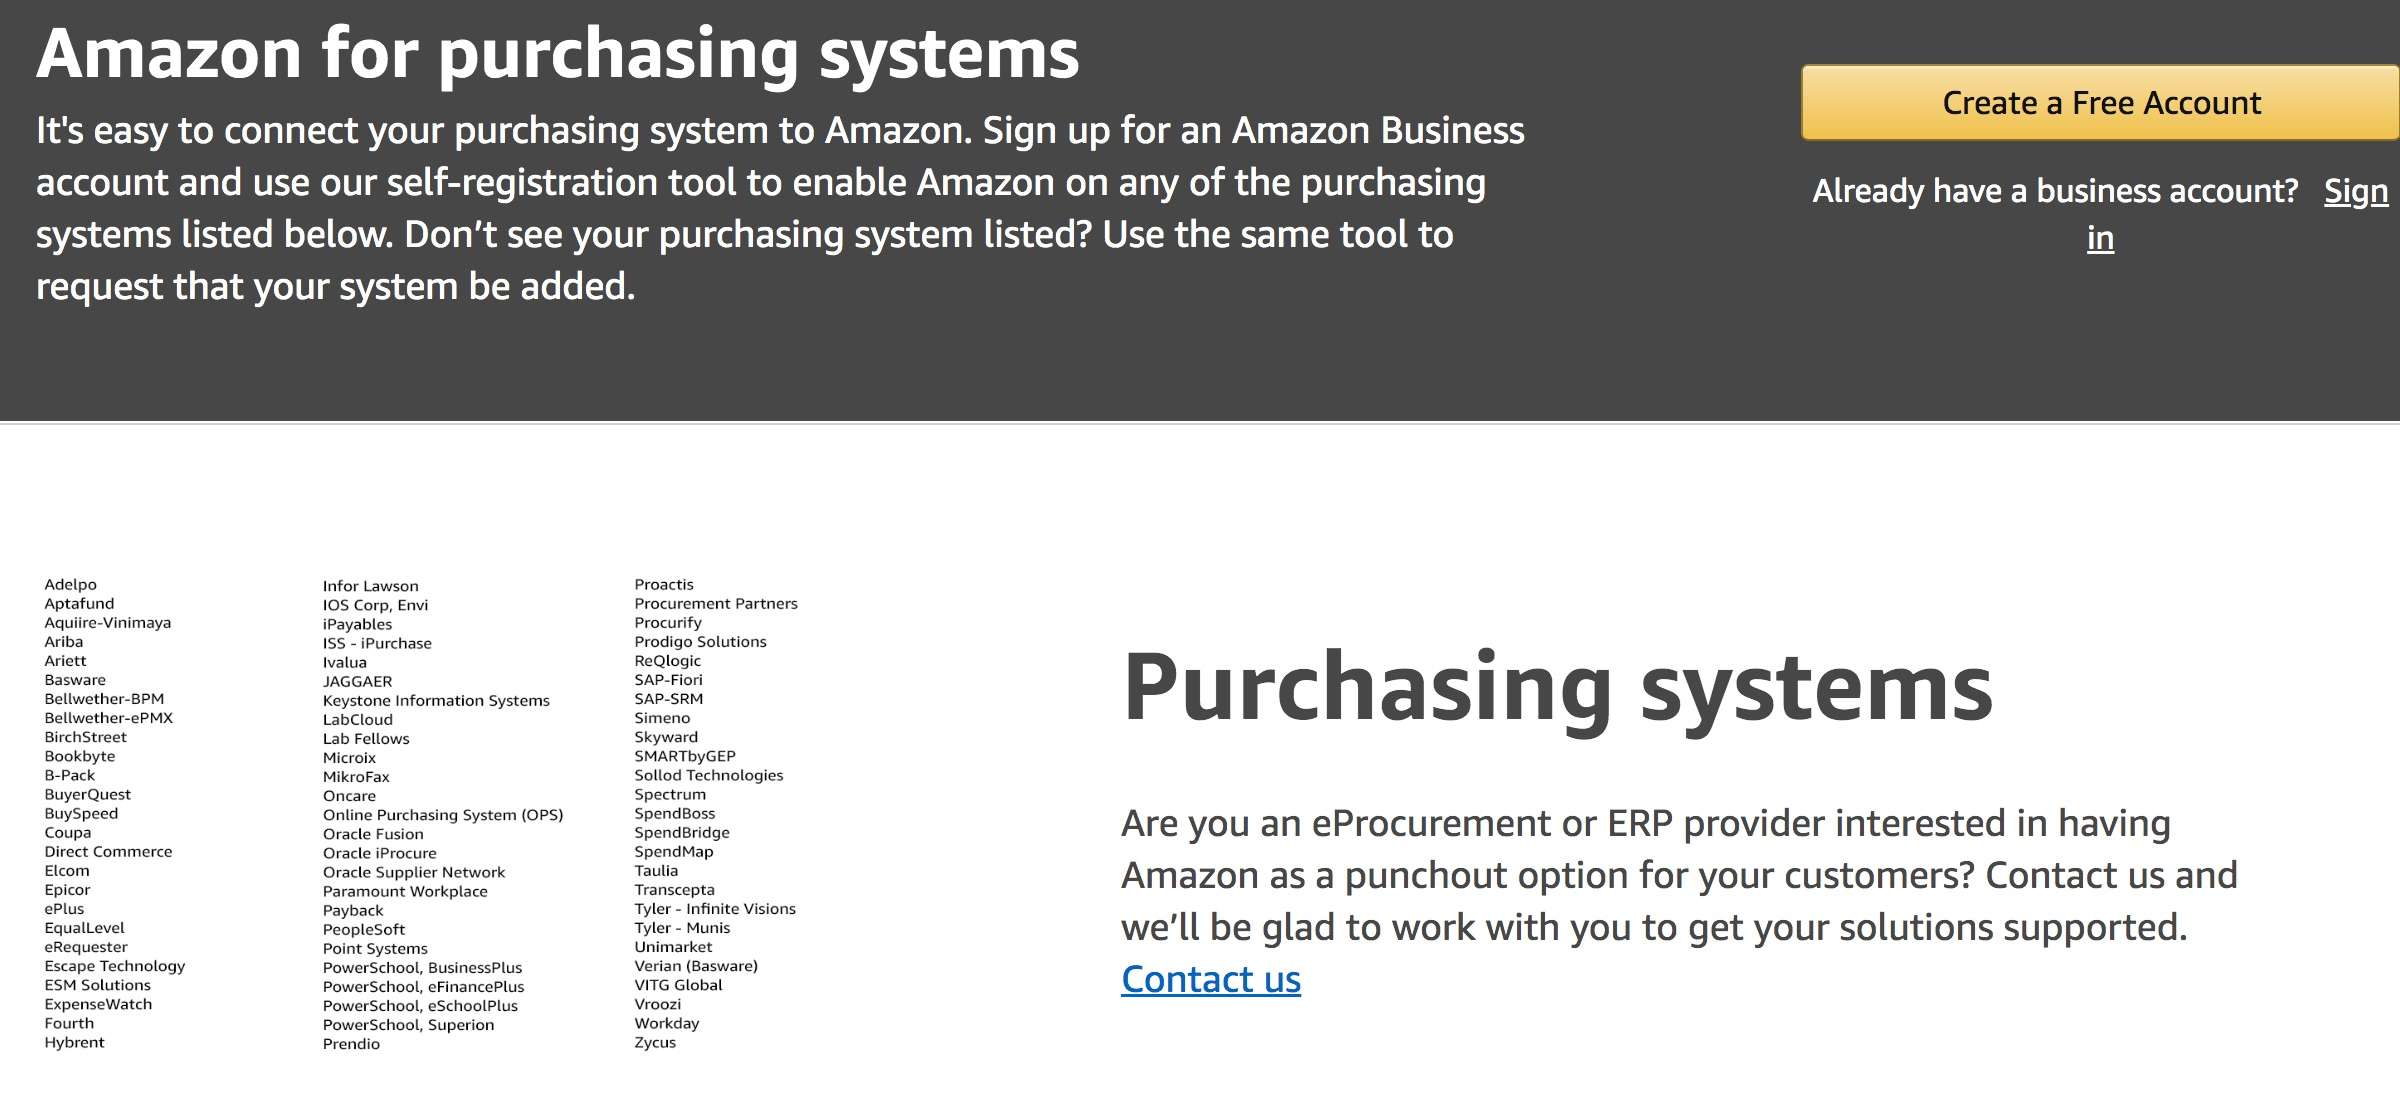 Amazon Purchasing Systems